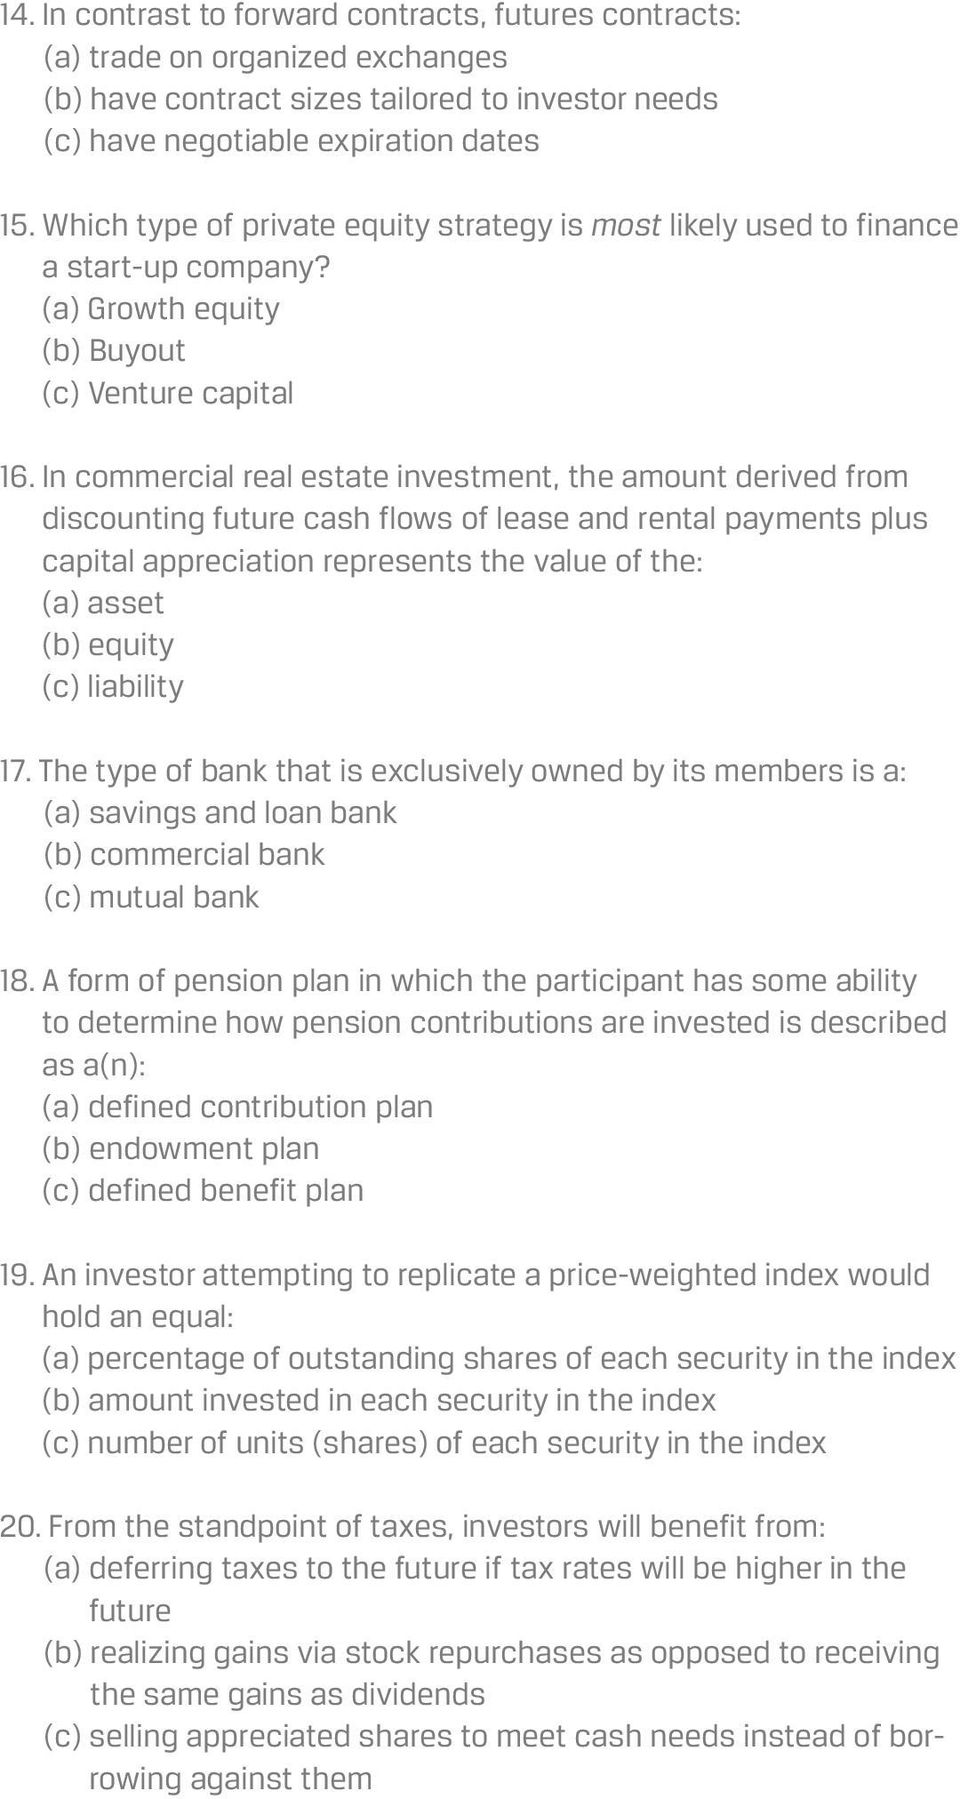 In commercial real estate investment, the amount derived from discounting future cash flows of lease and rental payments plus capital appreciation represents the value of the: (a) asset (b) equity